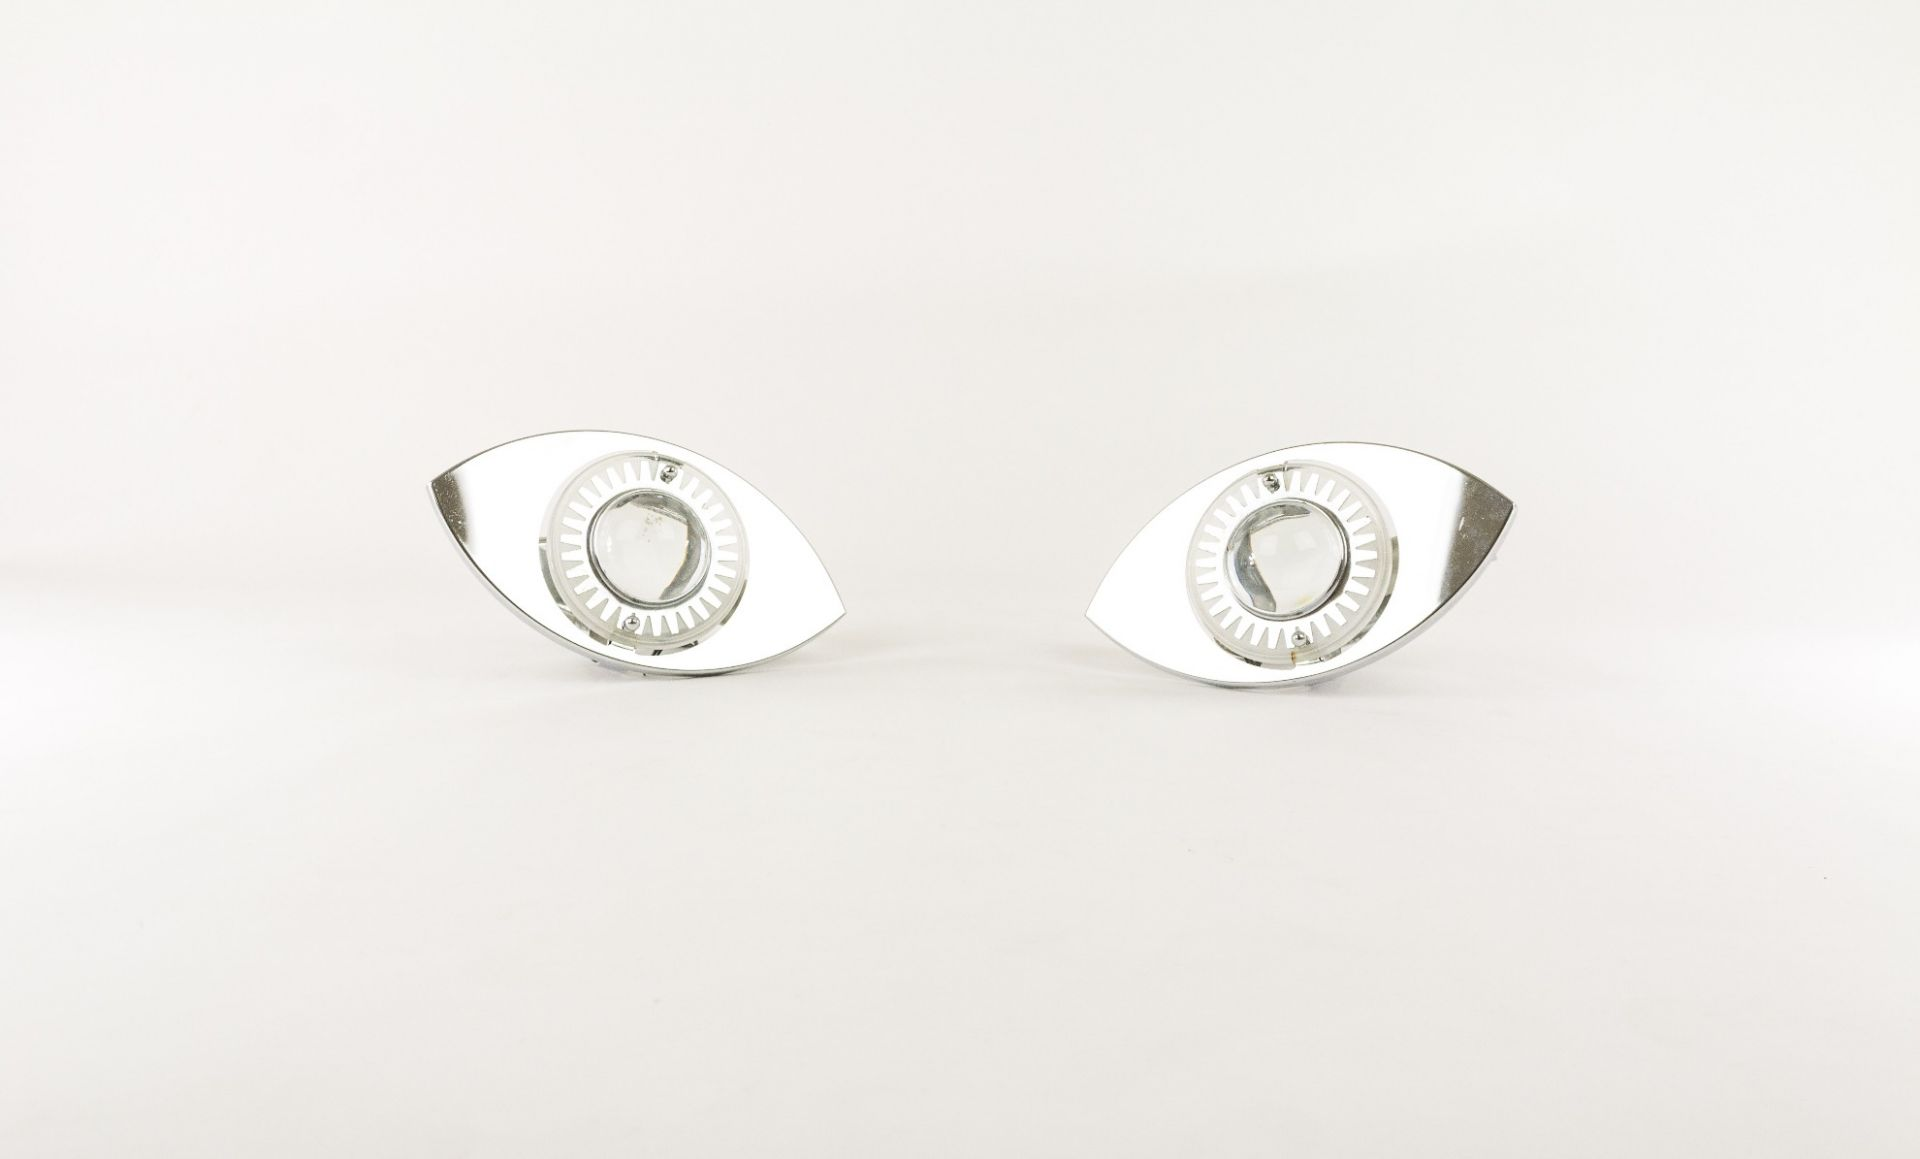 Pair of glass appliques attributed to Oscar Torlasco for Stilkronen, 1960s